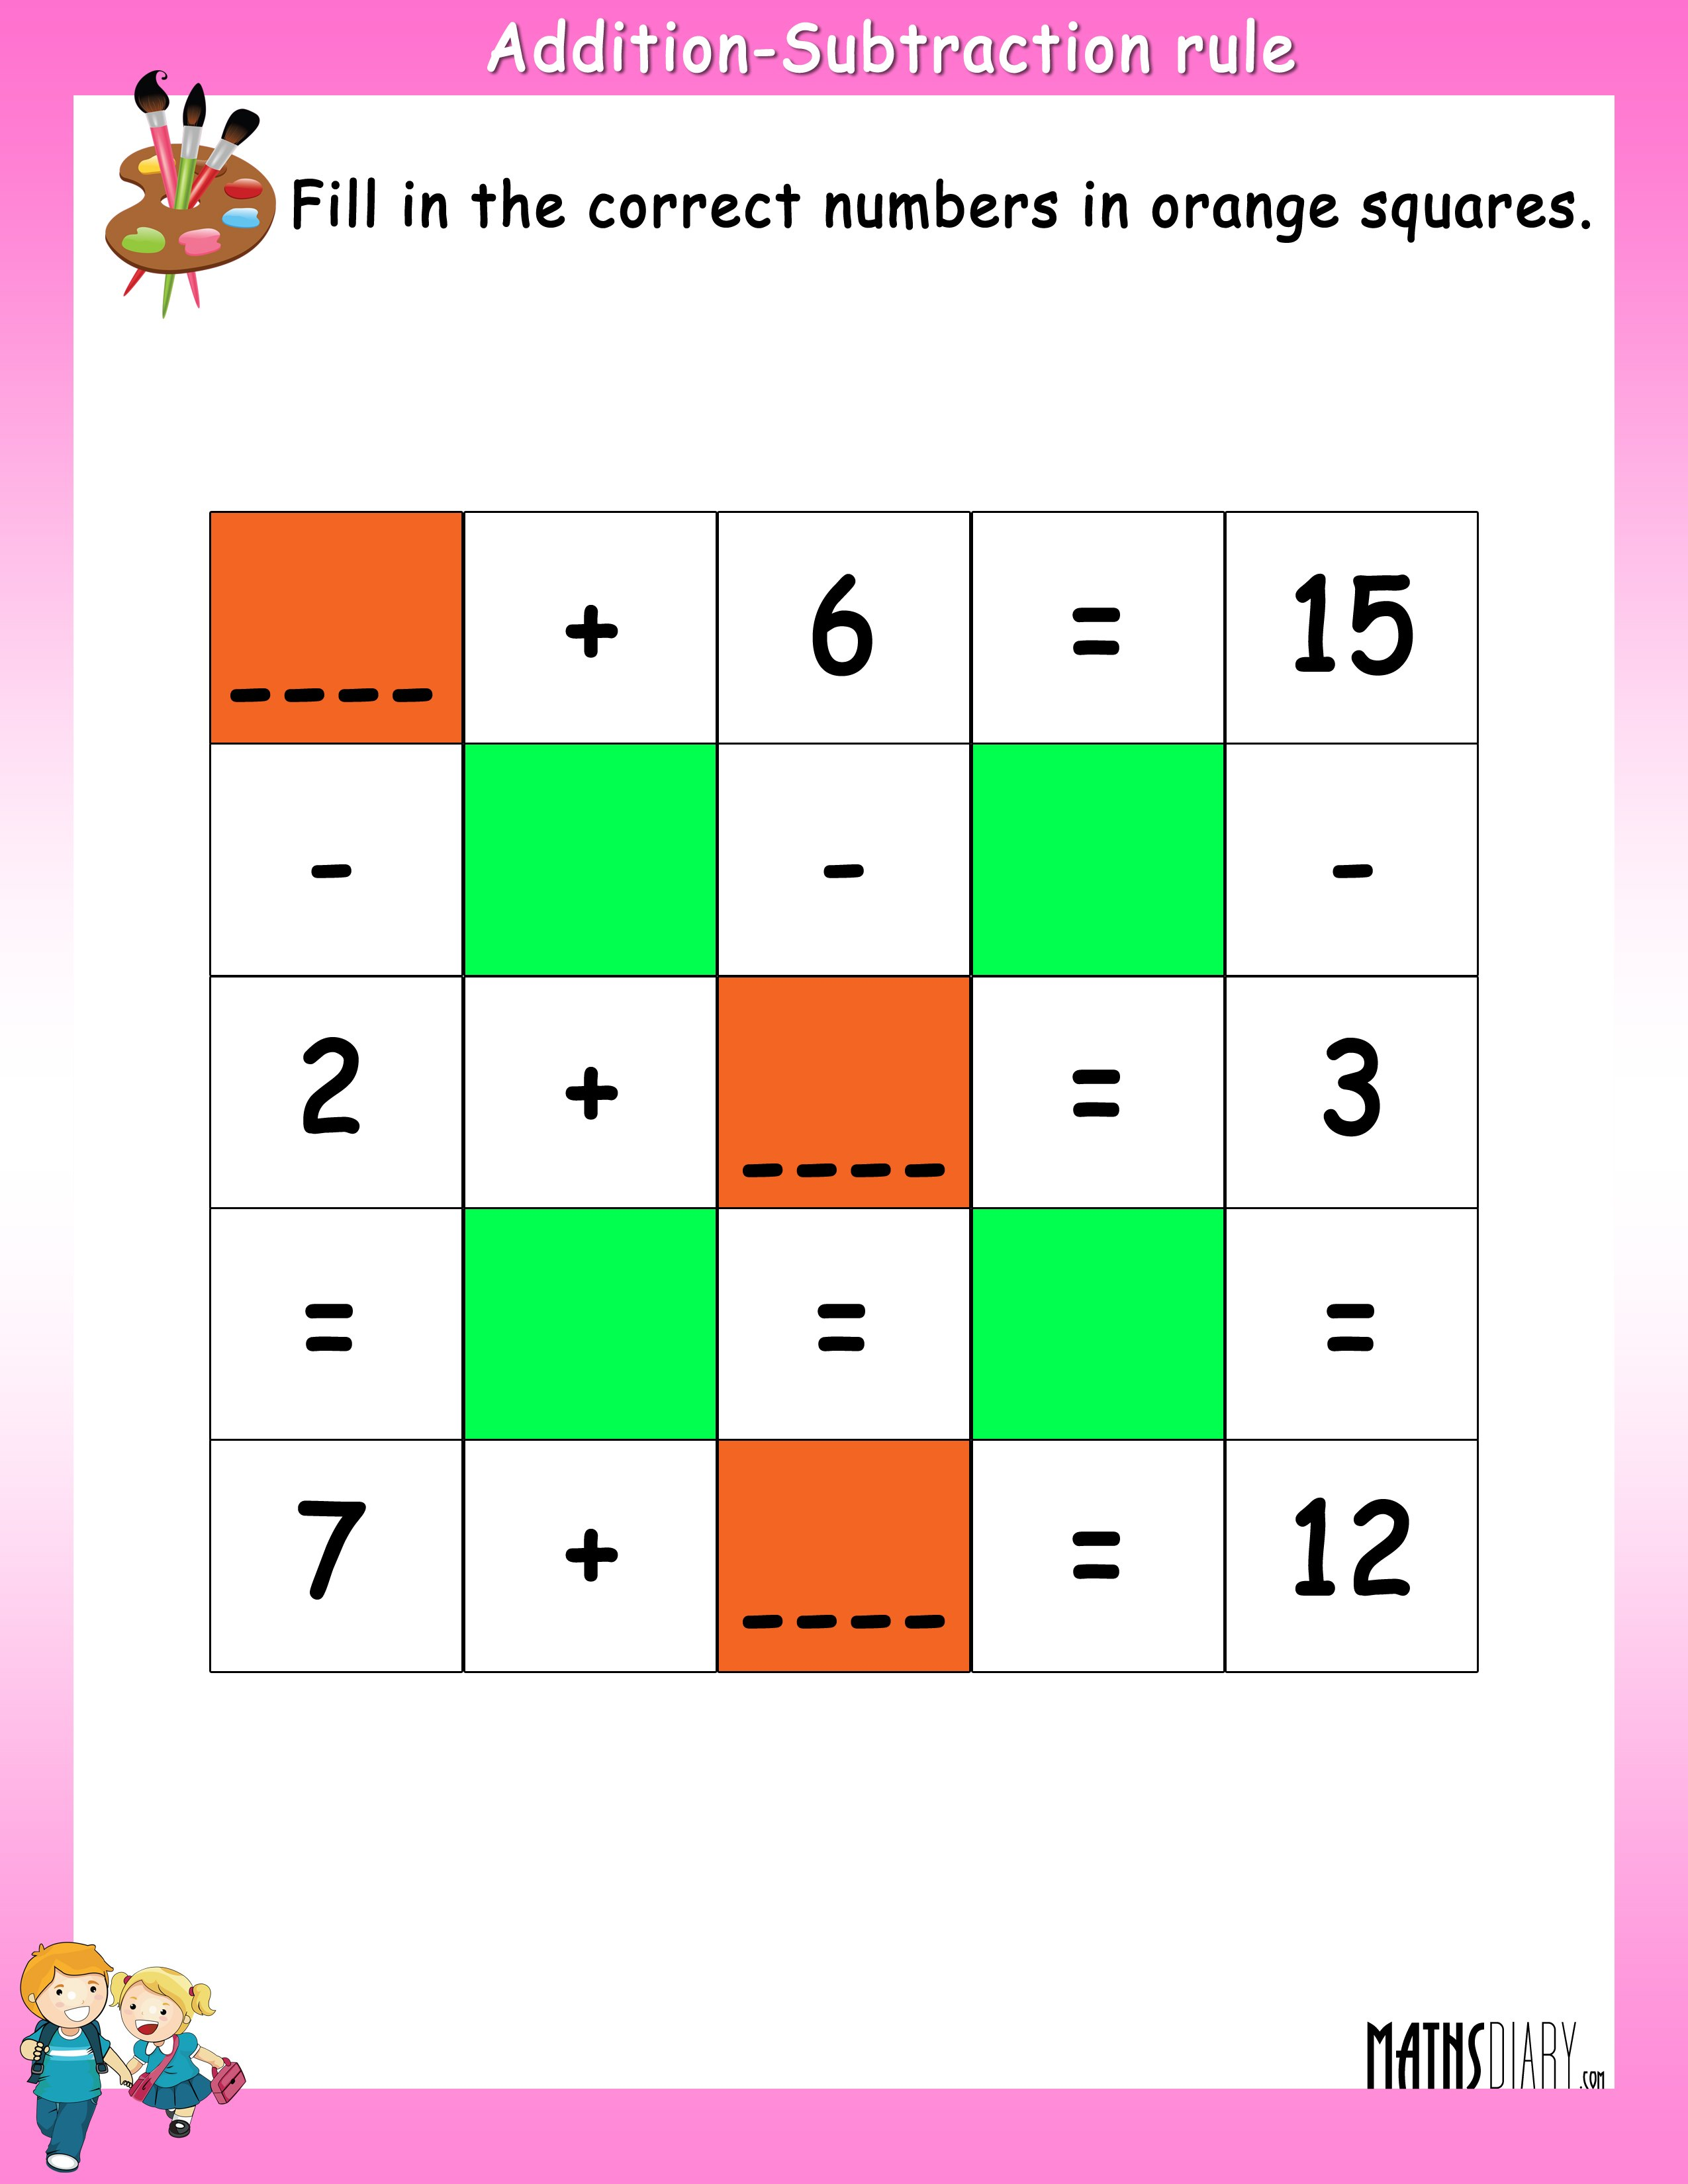 Addition Subtraction Rule